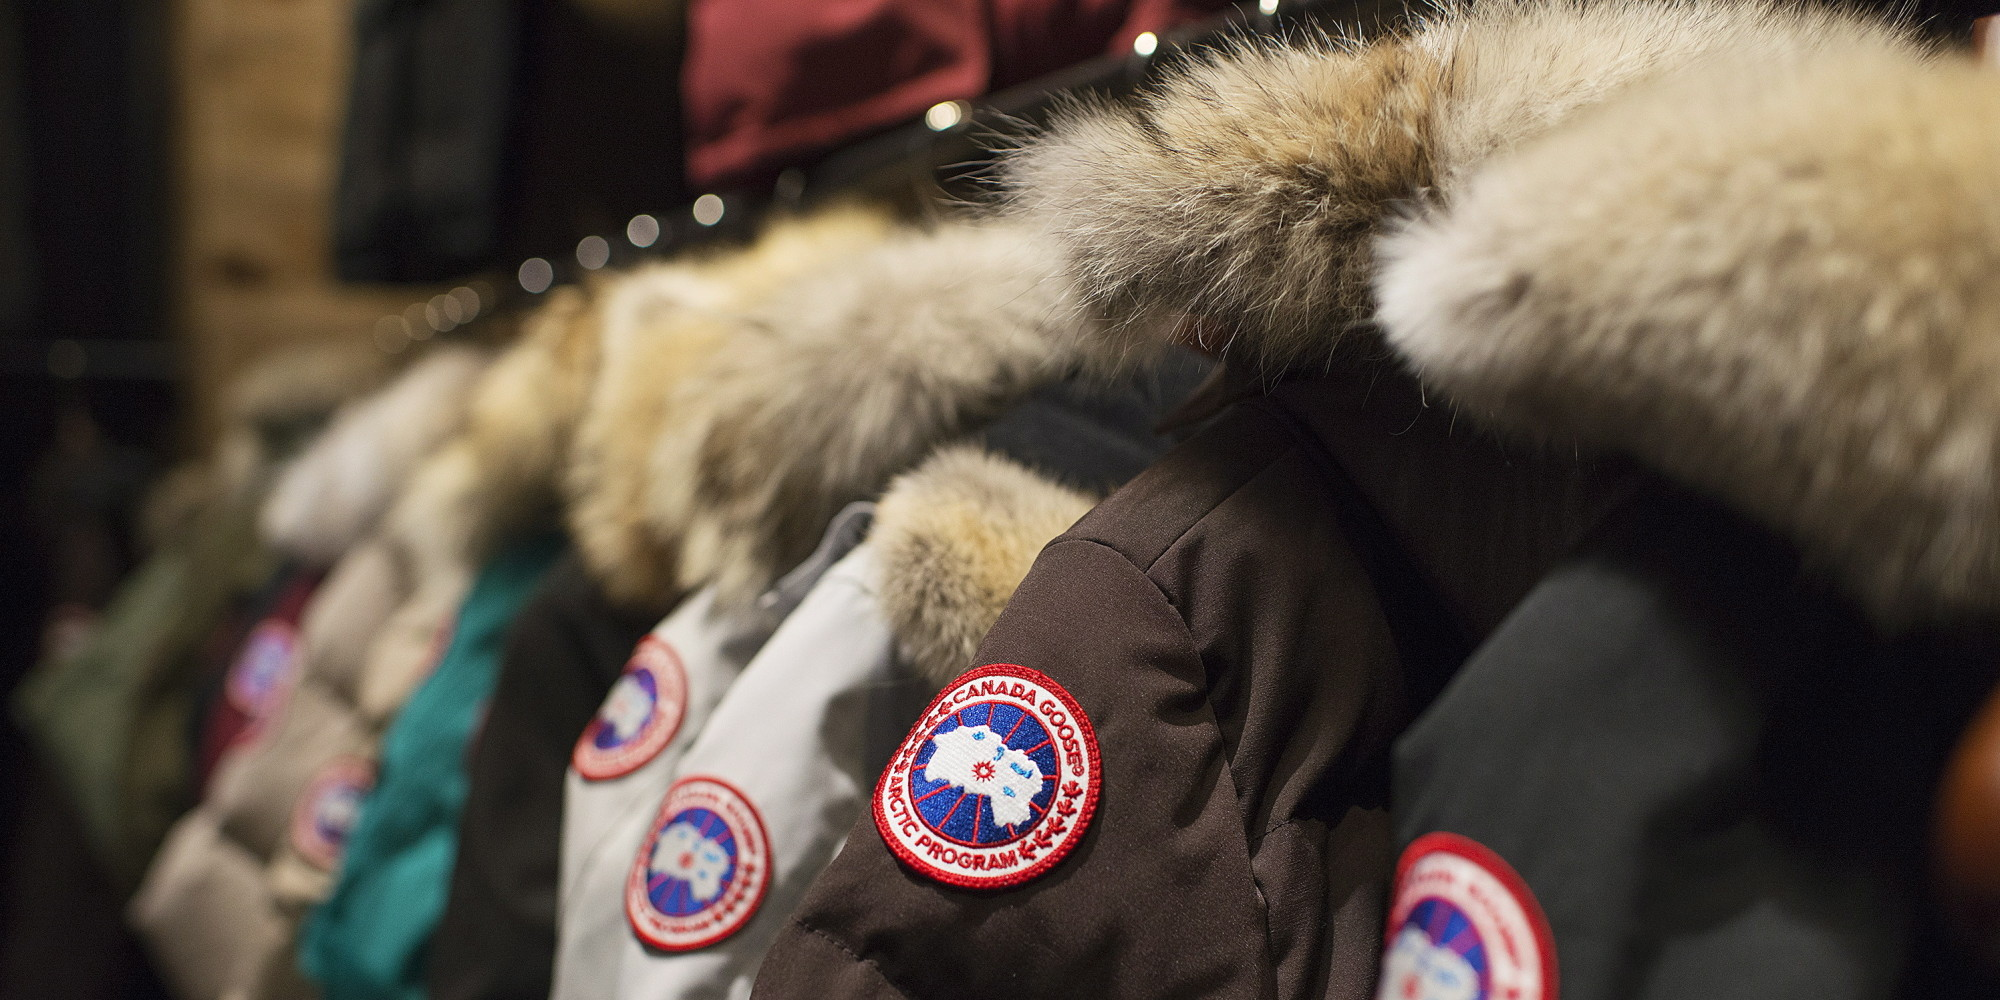 who sells Canada Goose' jackets in montreal